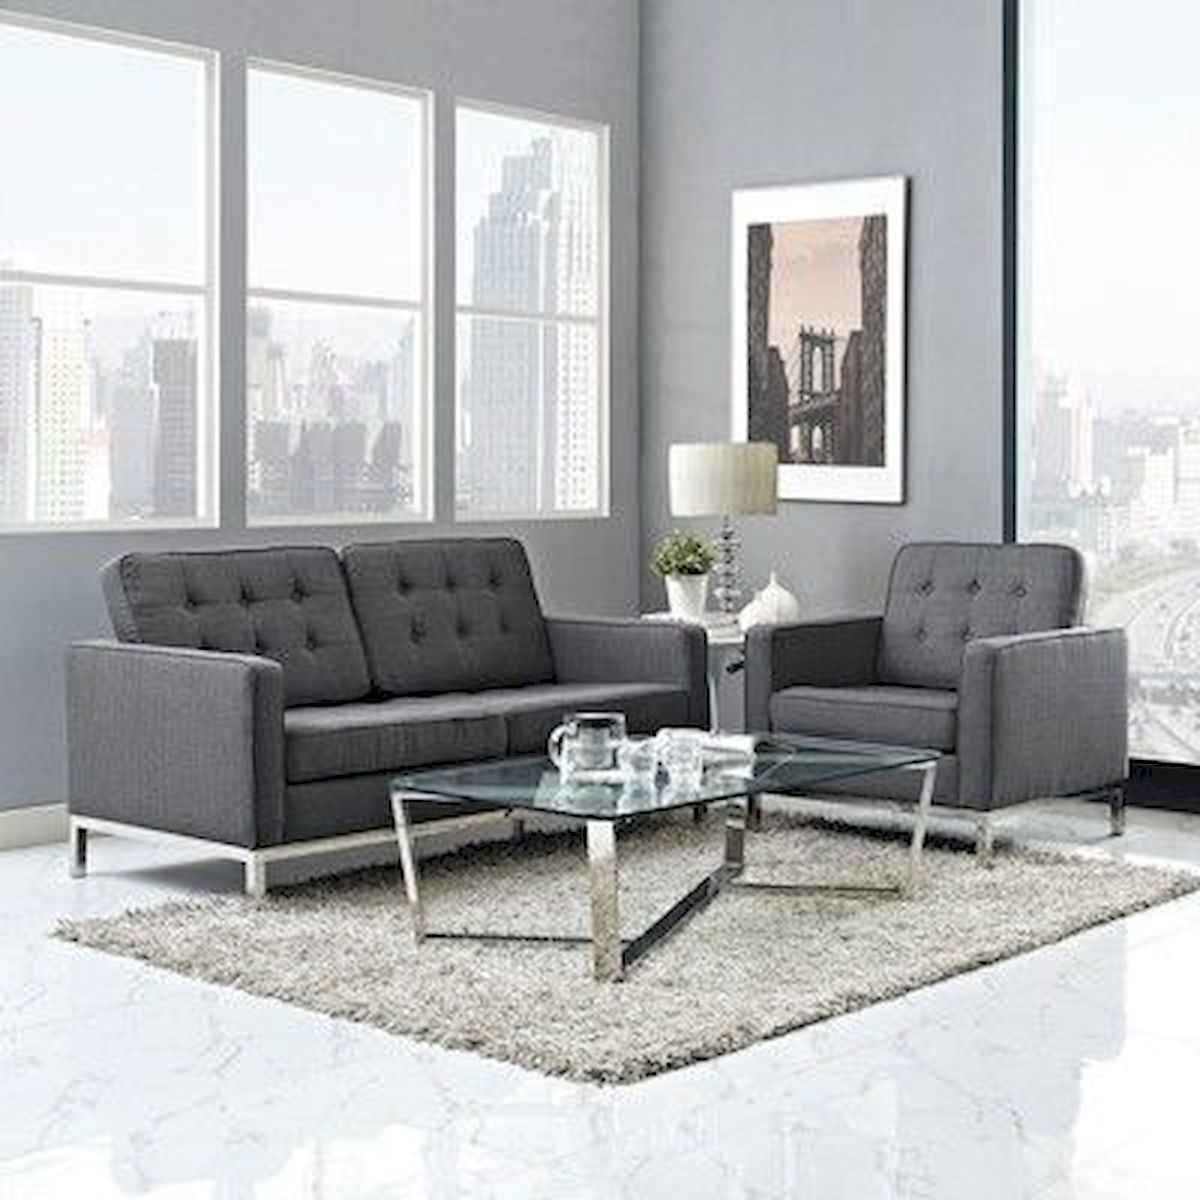 70 Stunning Grey White Black Living Room Decor Ideas And Remodel (40)